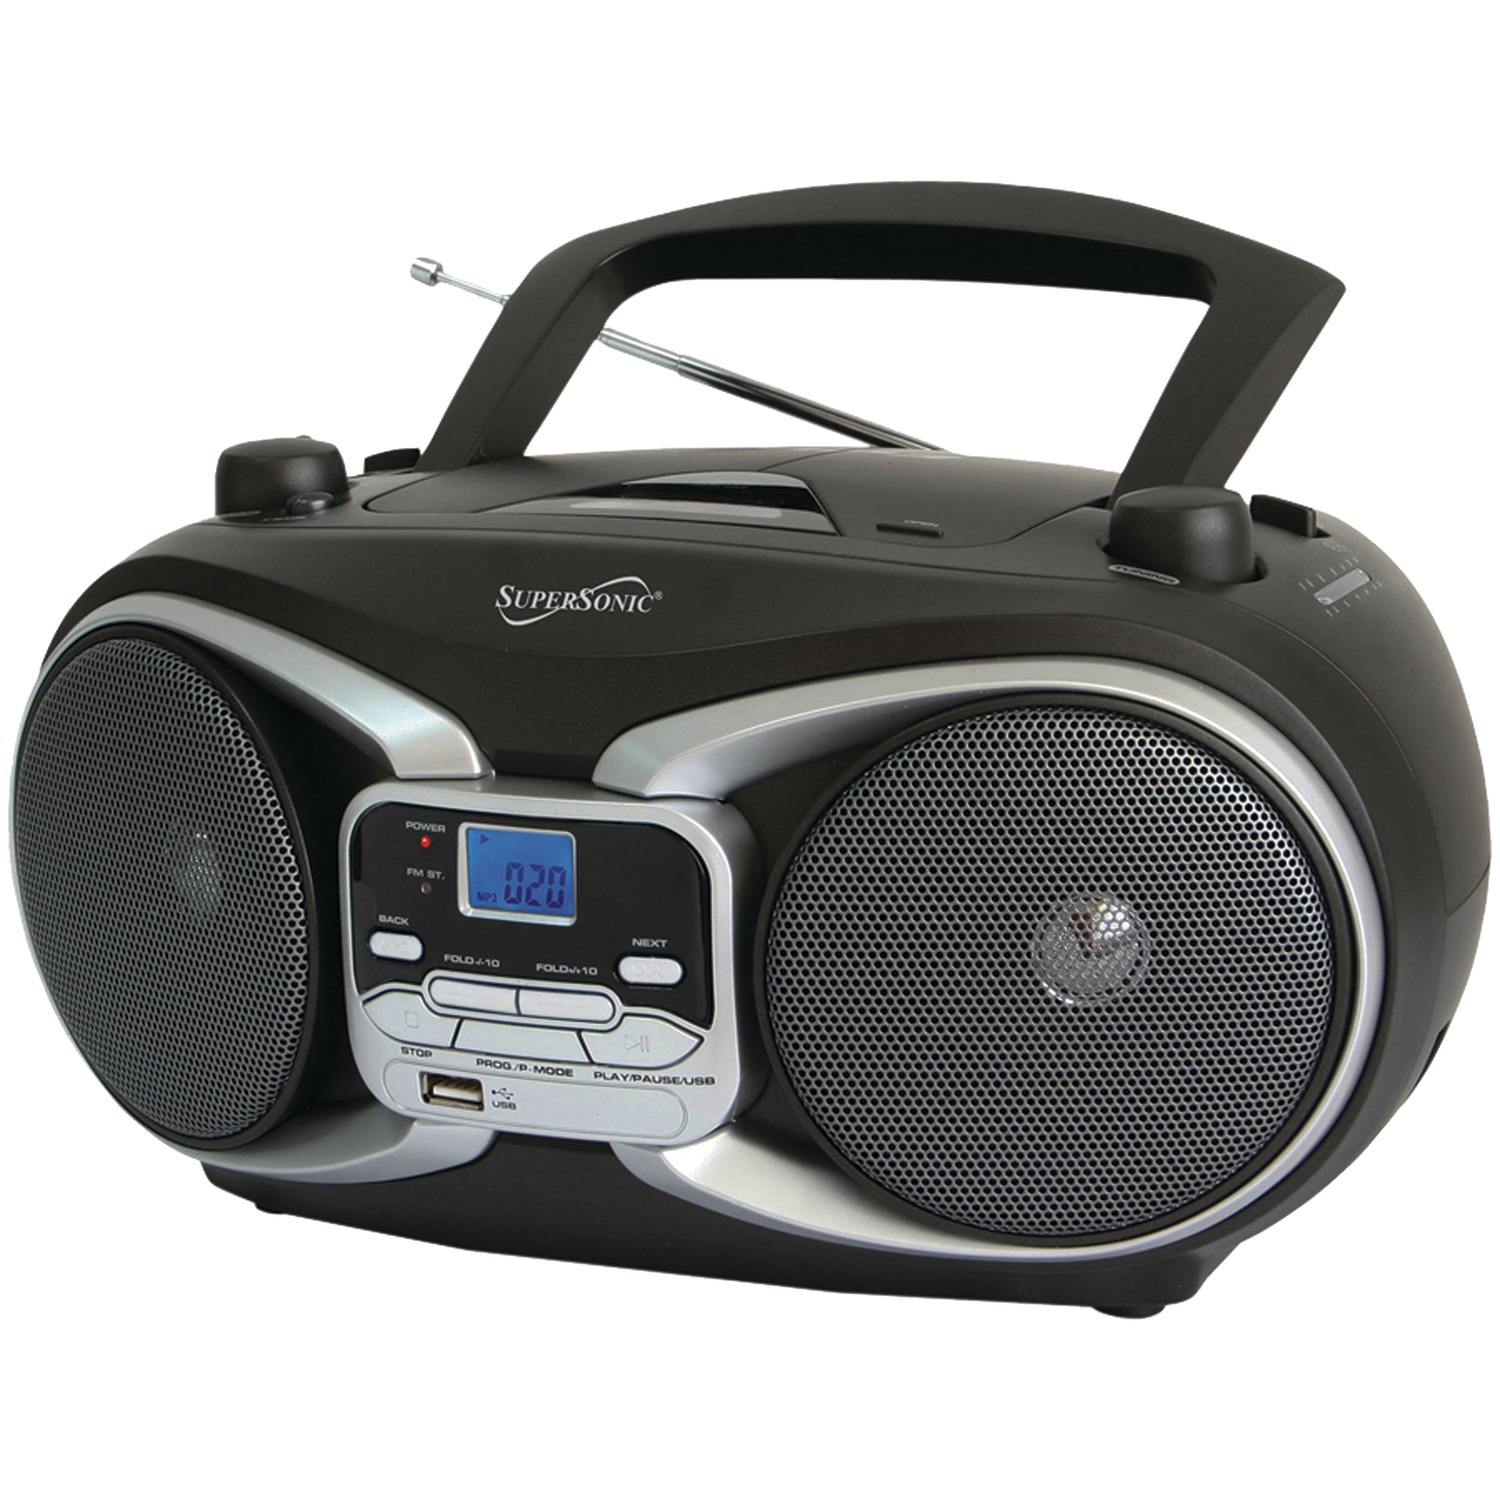 supersonic sc 504 silver portable mp3 cd player with. Black Bedroom Furniture Sets. Home Design Ideas